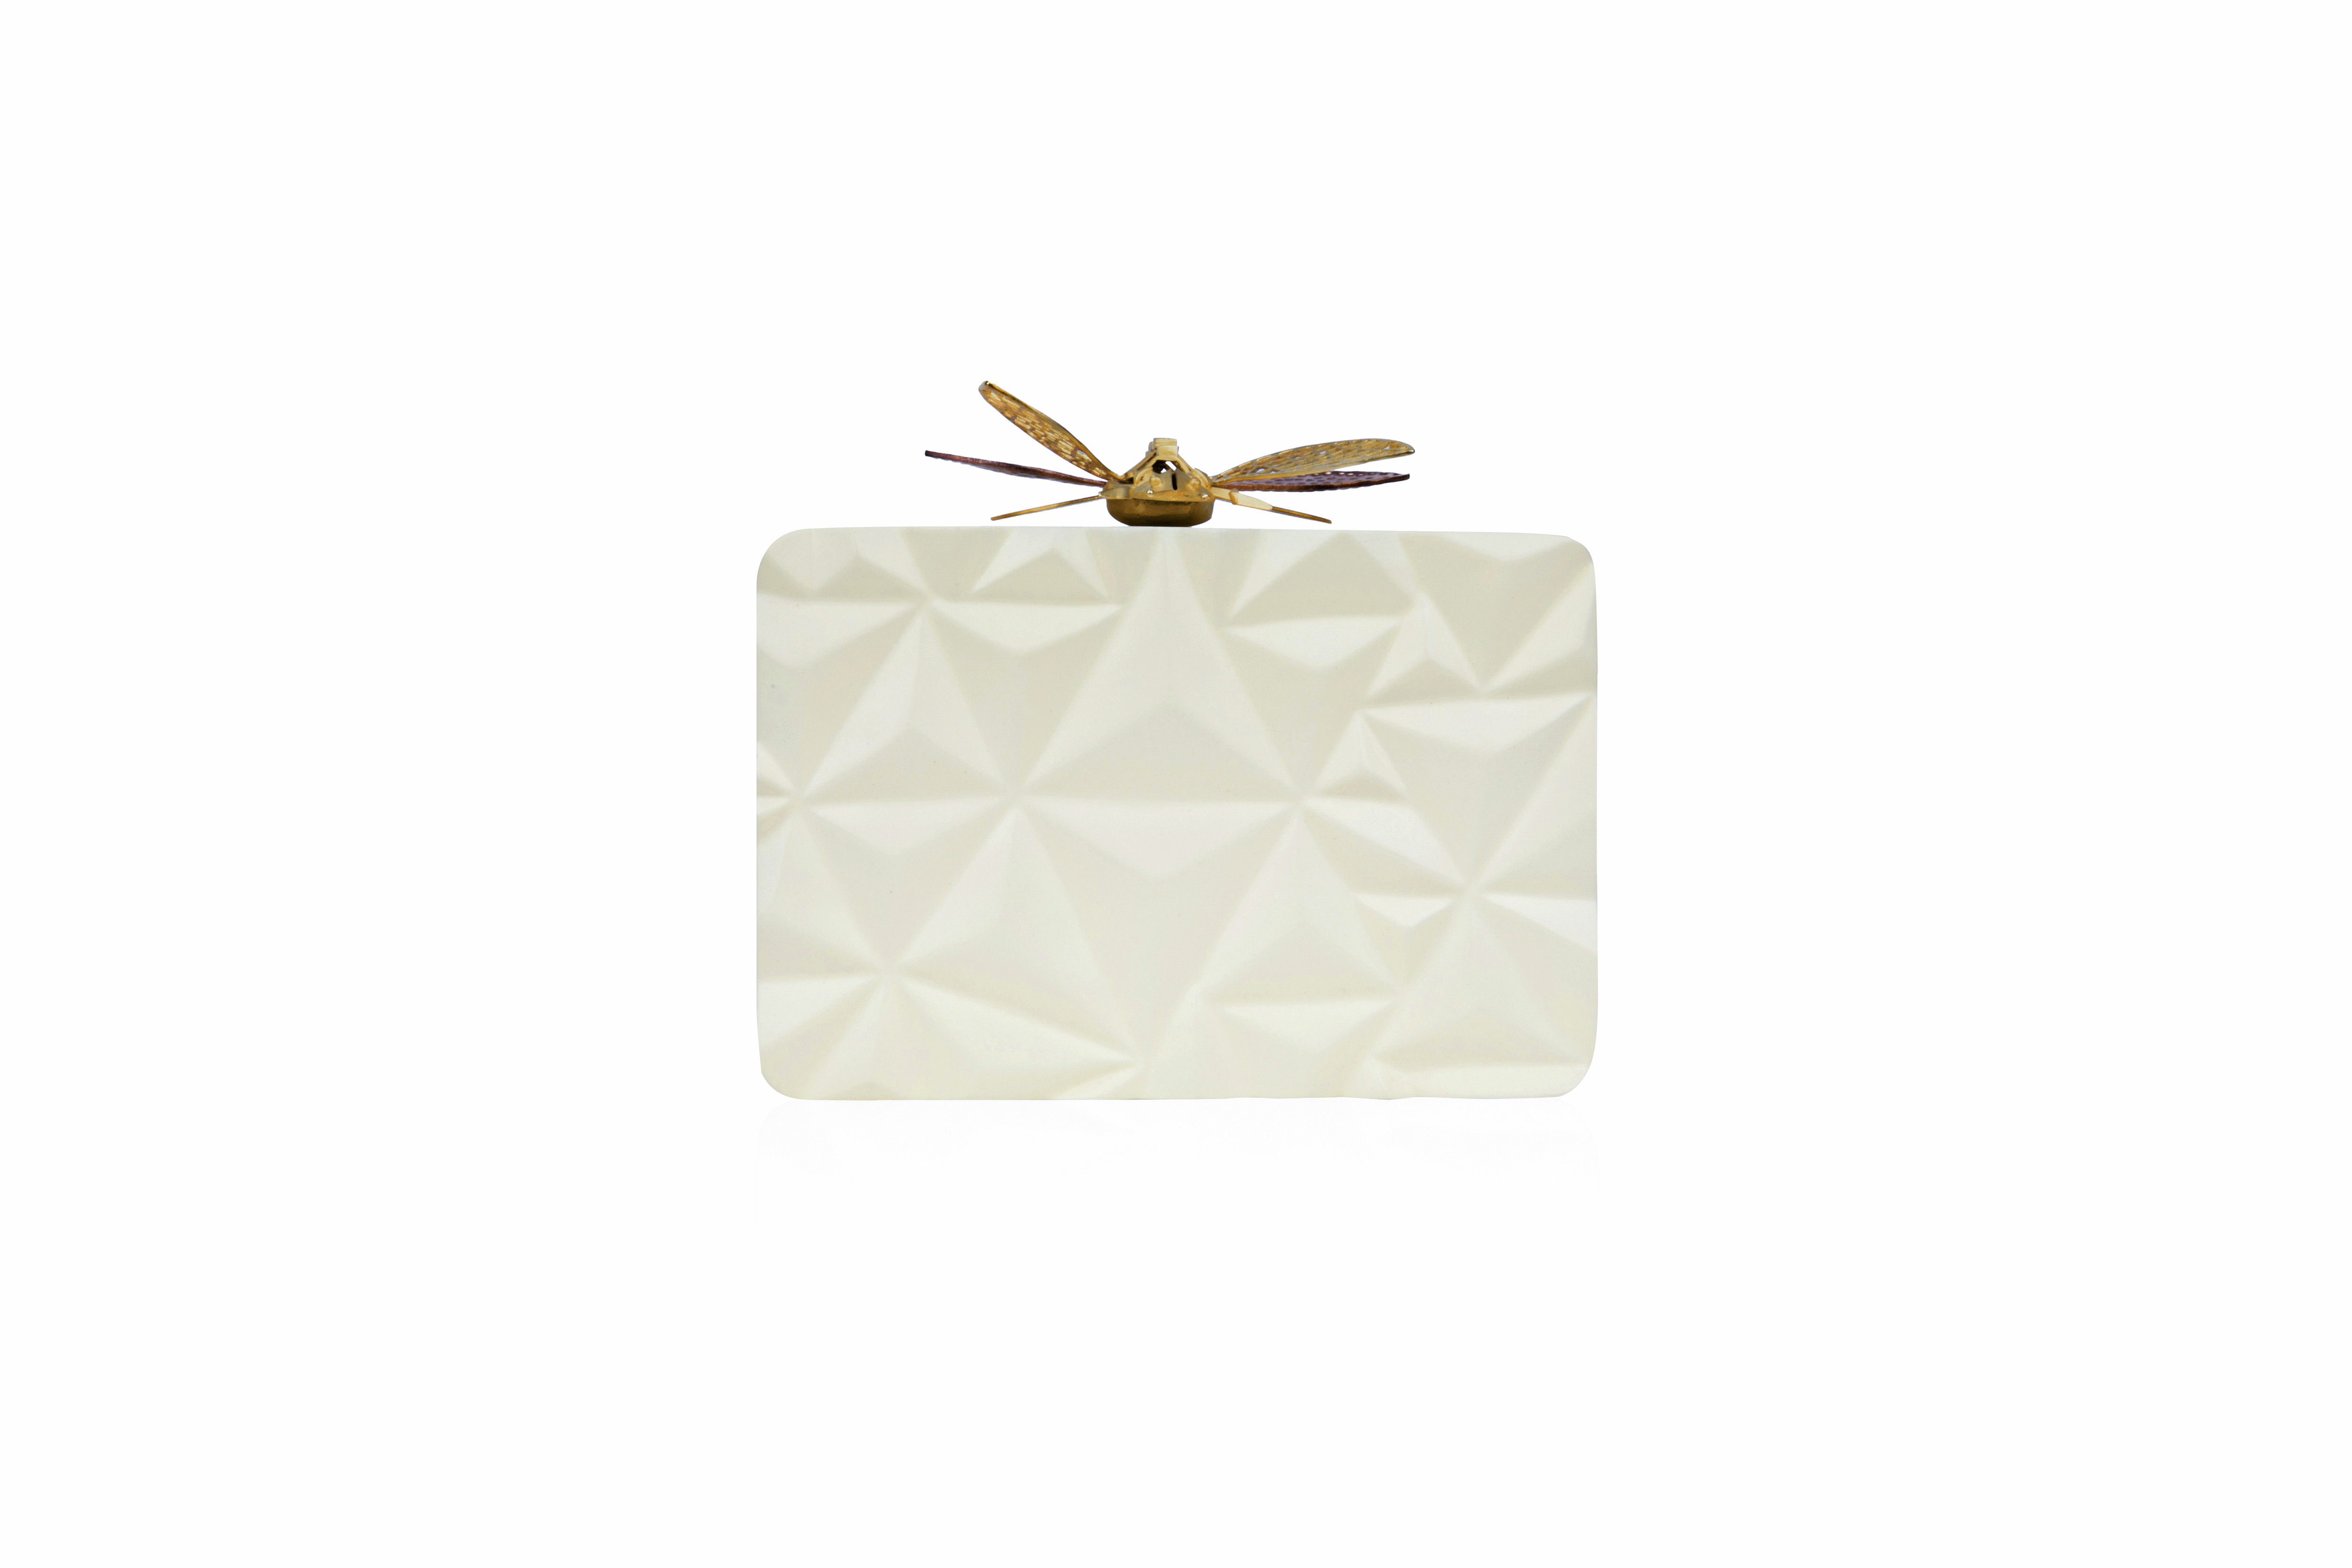 Triangle Cream Dragonfly Clutch by Duet Luxury on curated-crowd.com